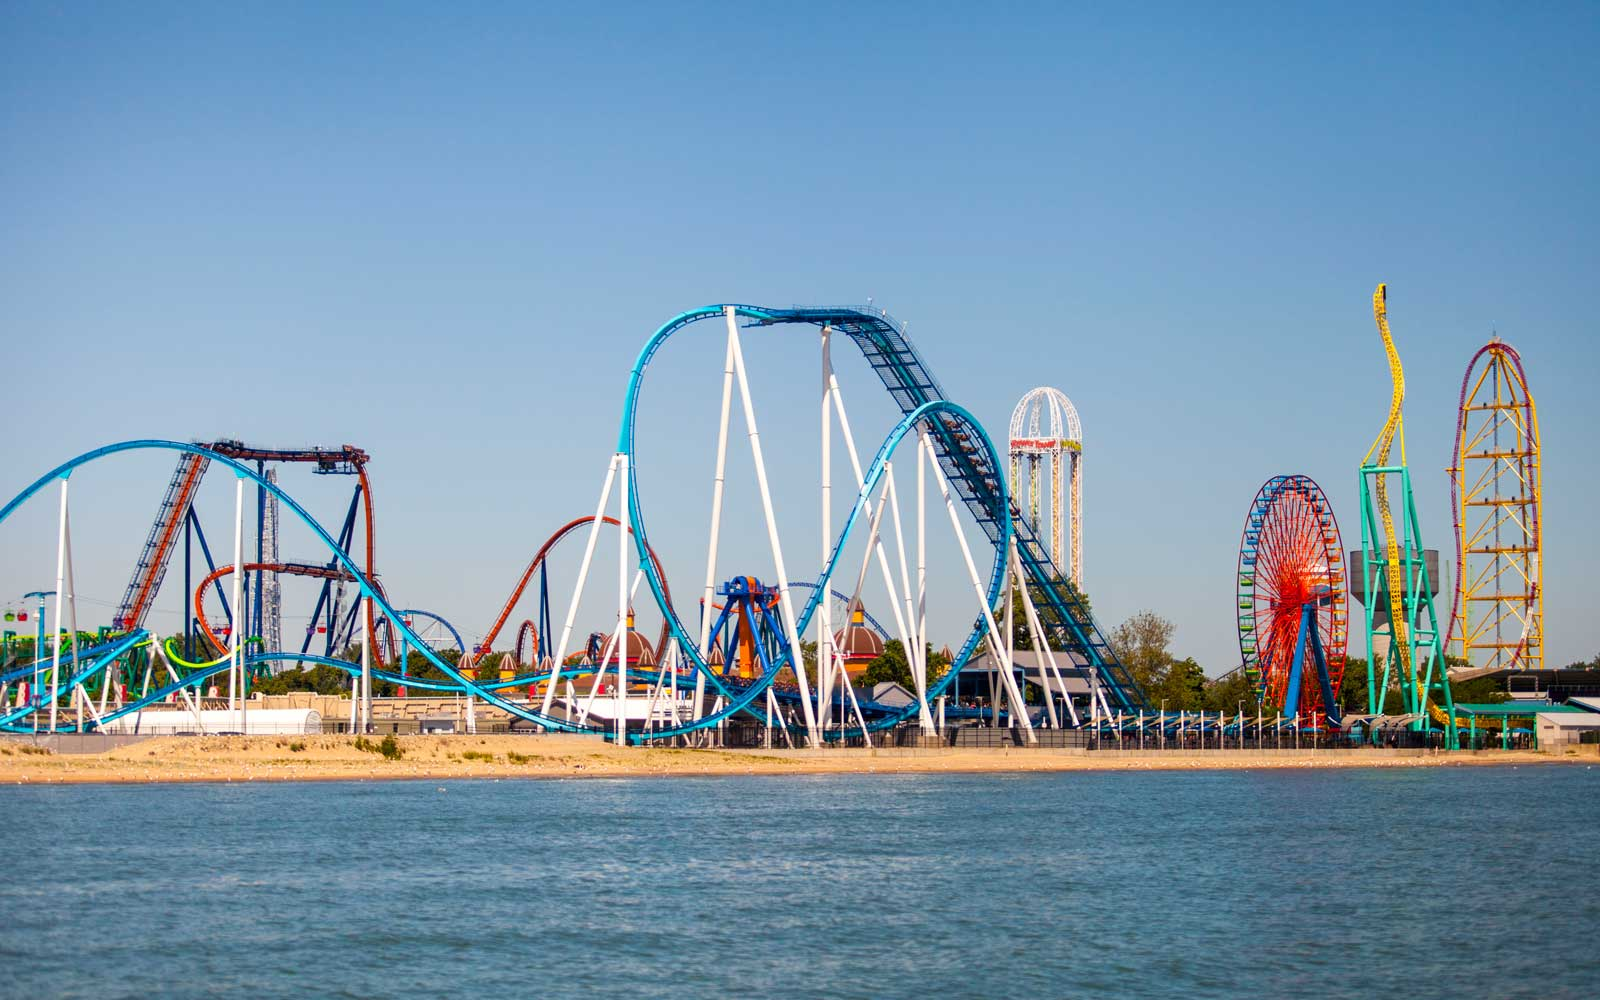 Every New Ride Coming to Amusement Parks in 2017